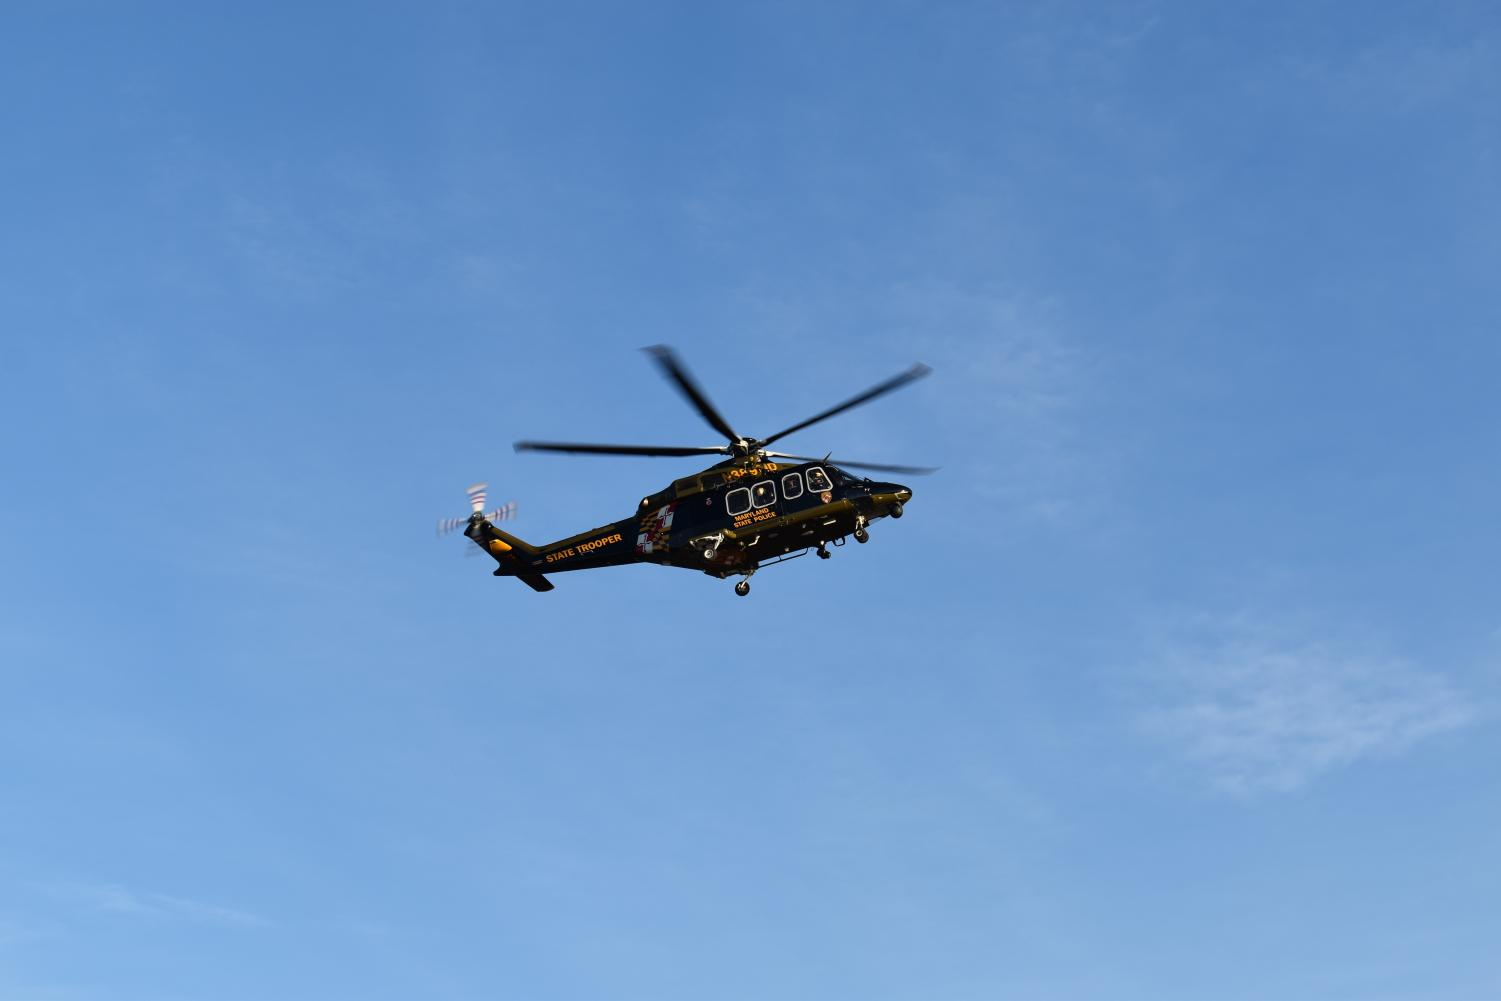 The medevac helicopter took an injured man to a trauma center.